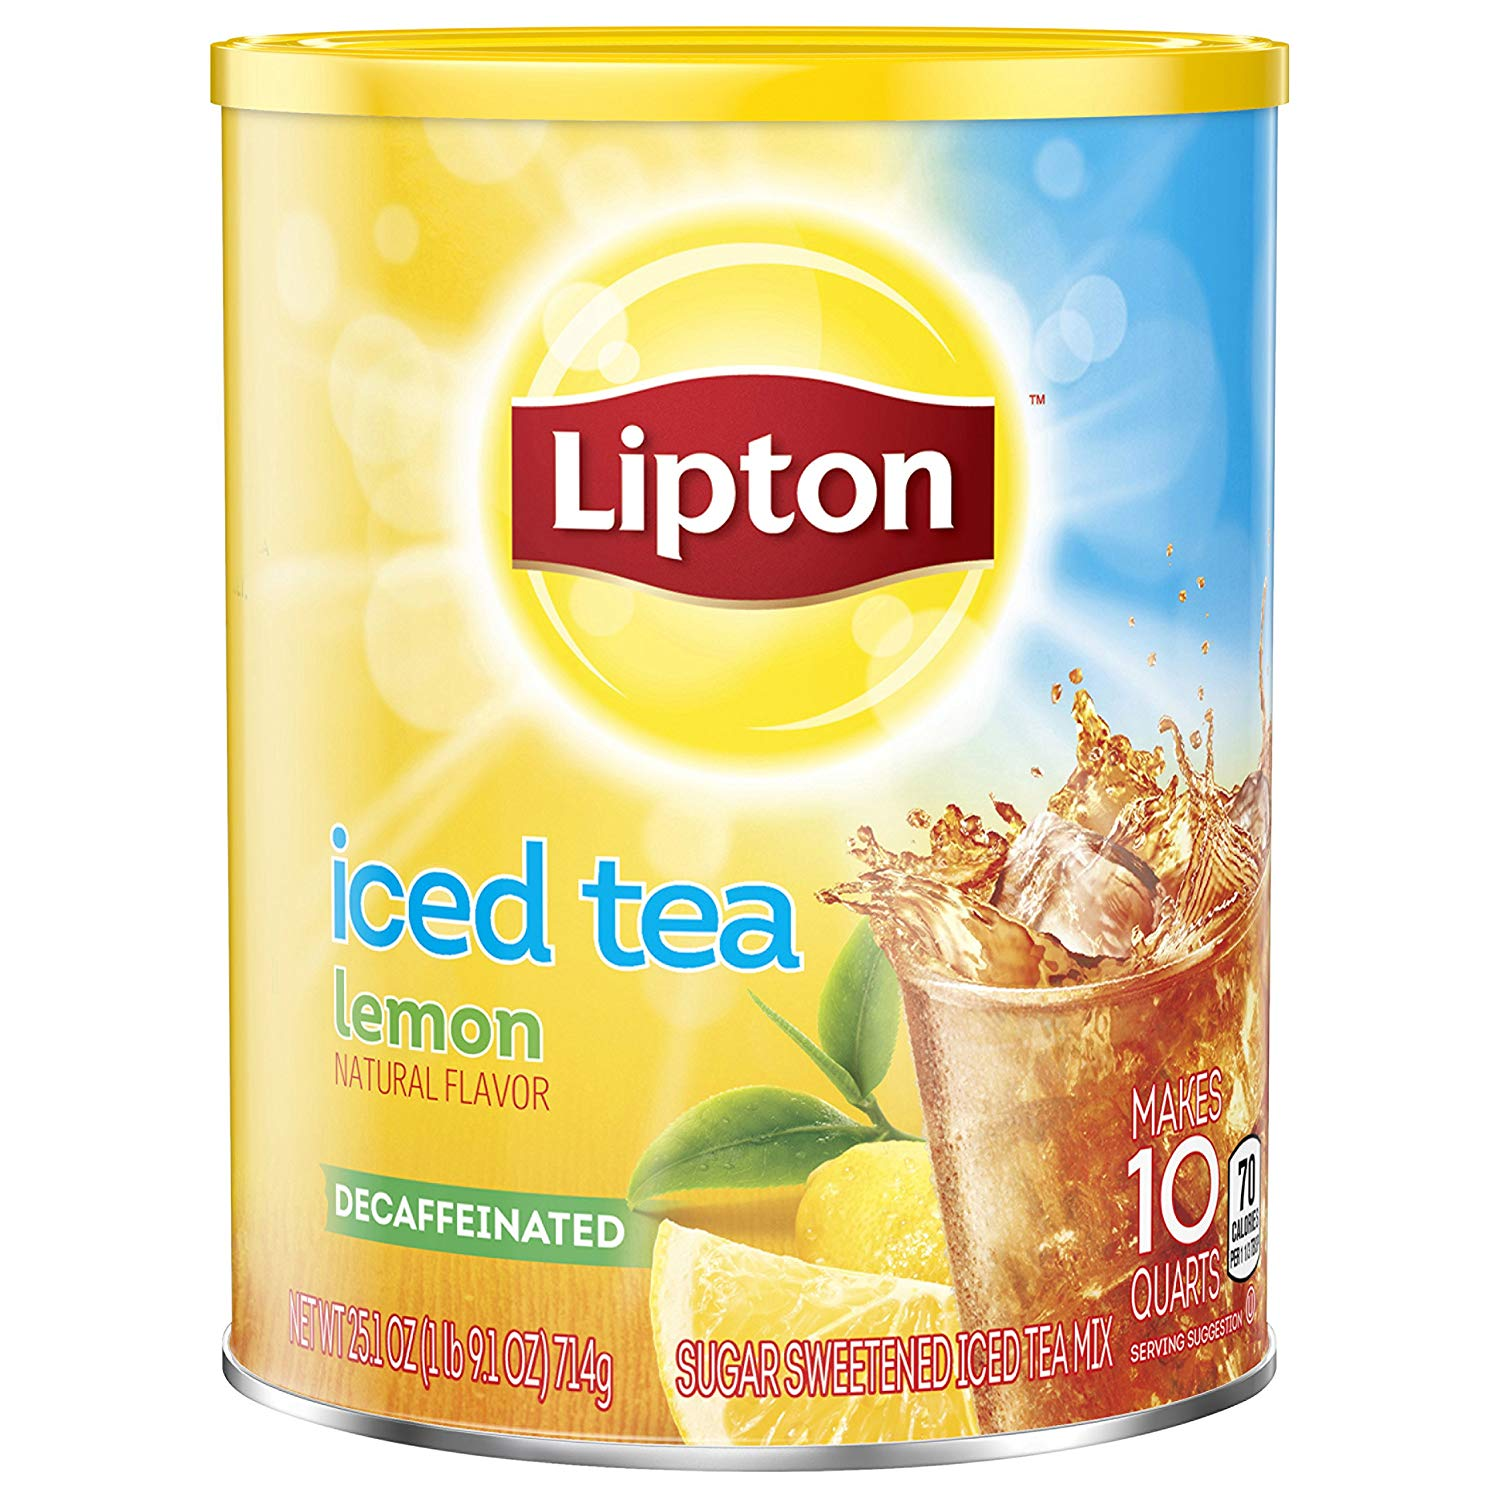 Lipton Black Iced Tea Mix Decaf Lemon Sweetened 10 qt, pack of 6